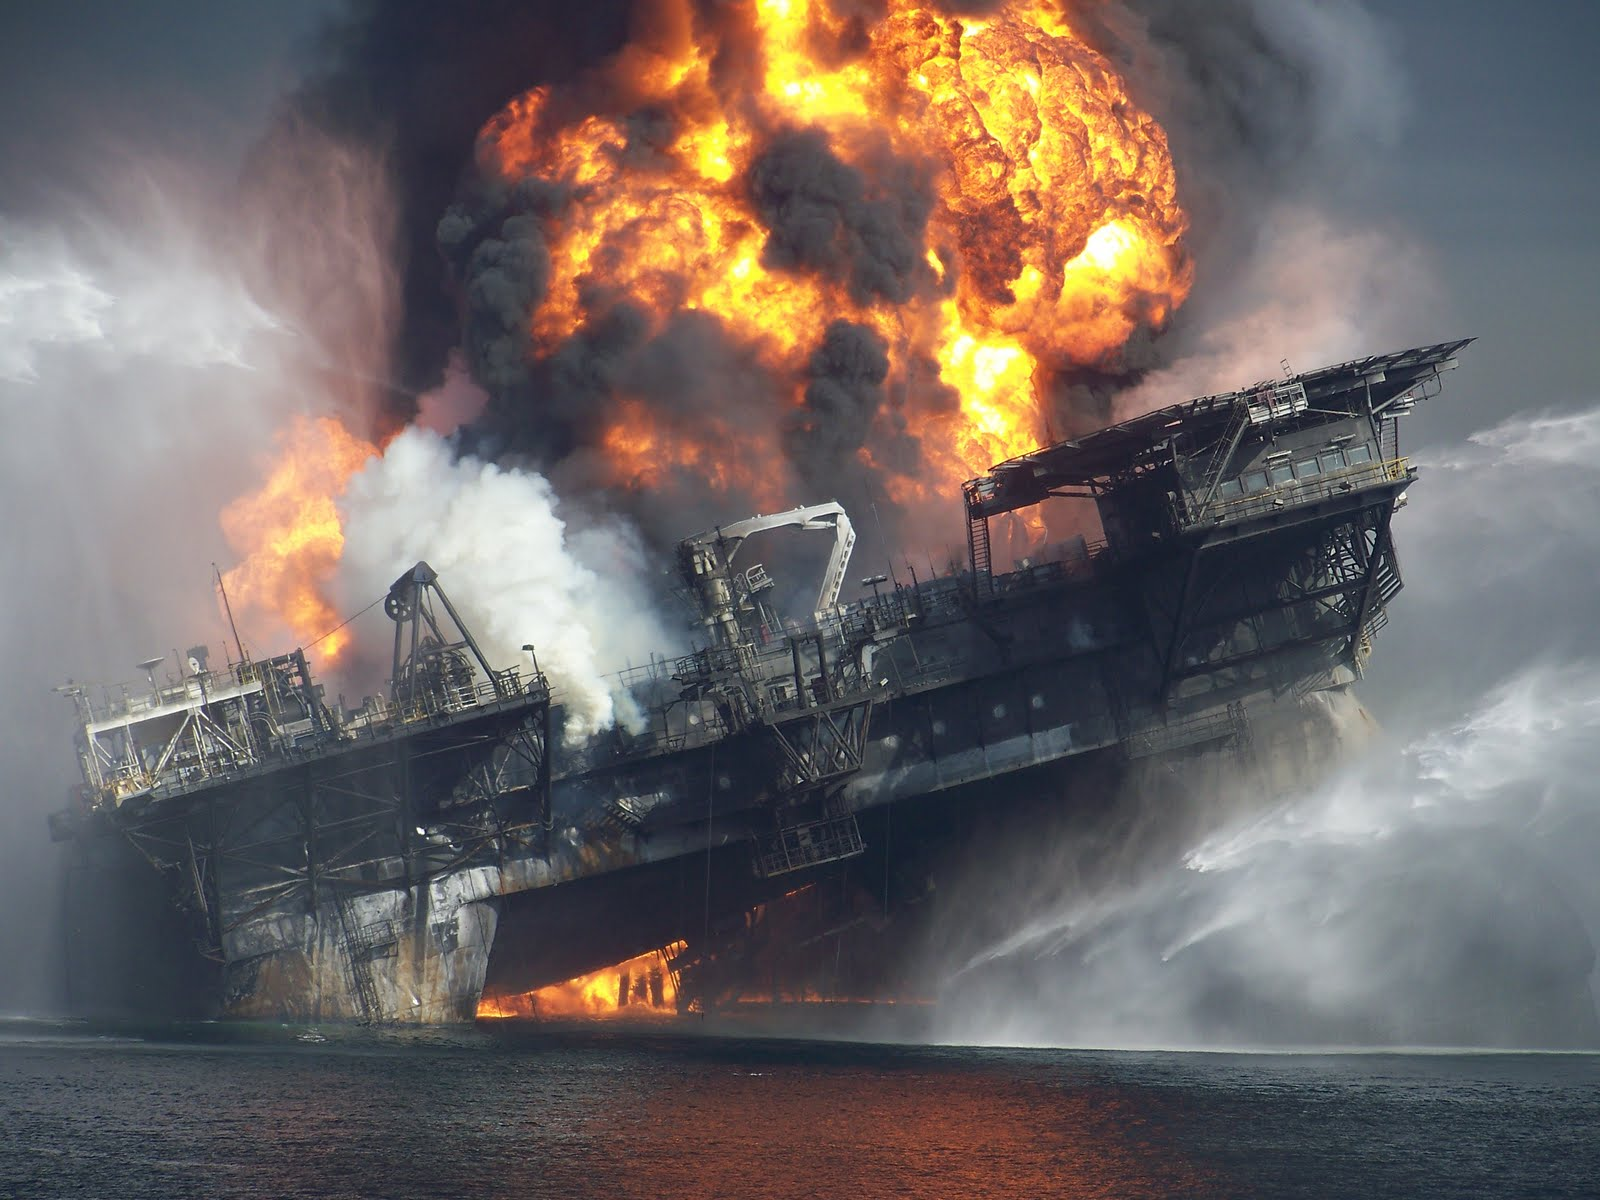 bp oil spill 5 years later 10 key questions and answers science 2 0